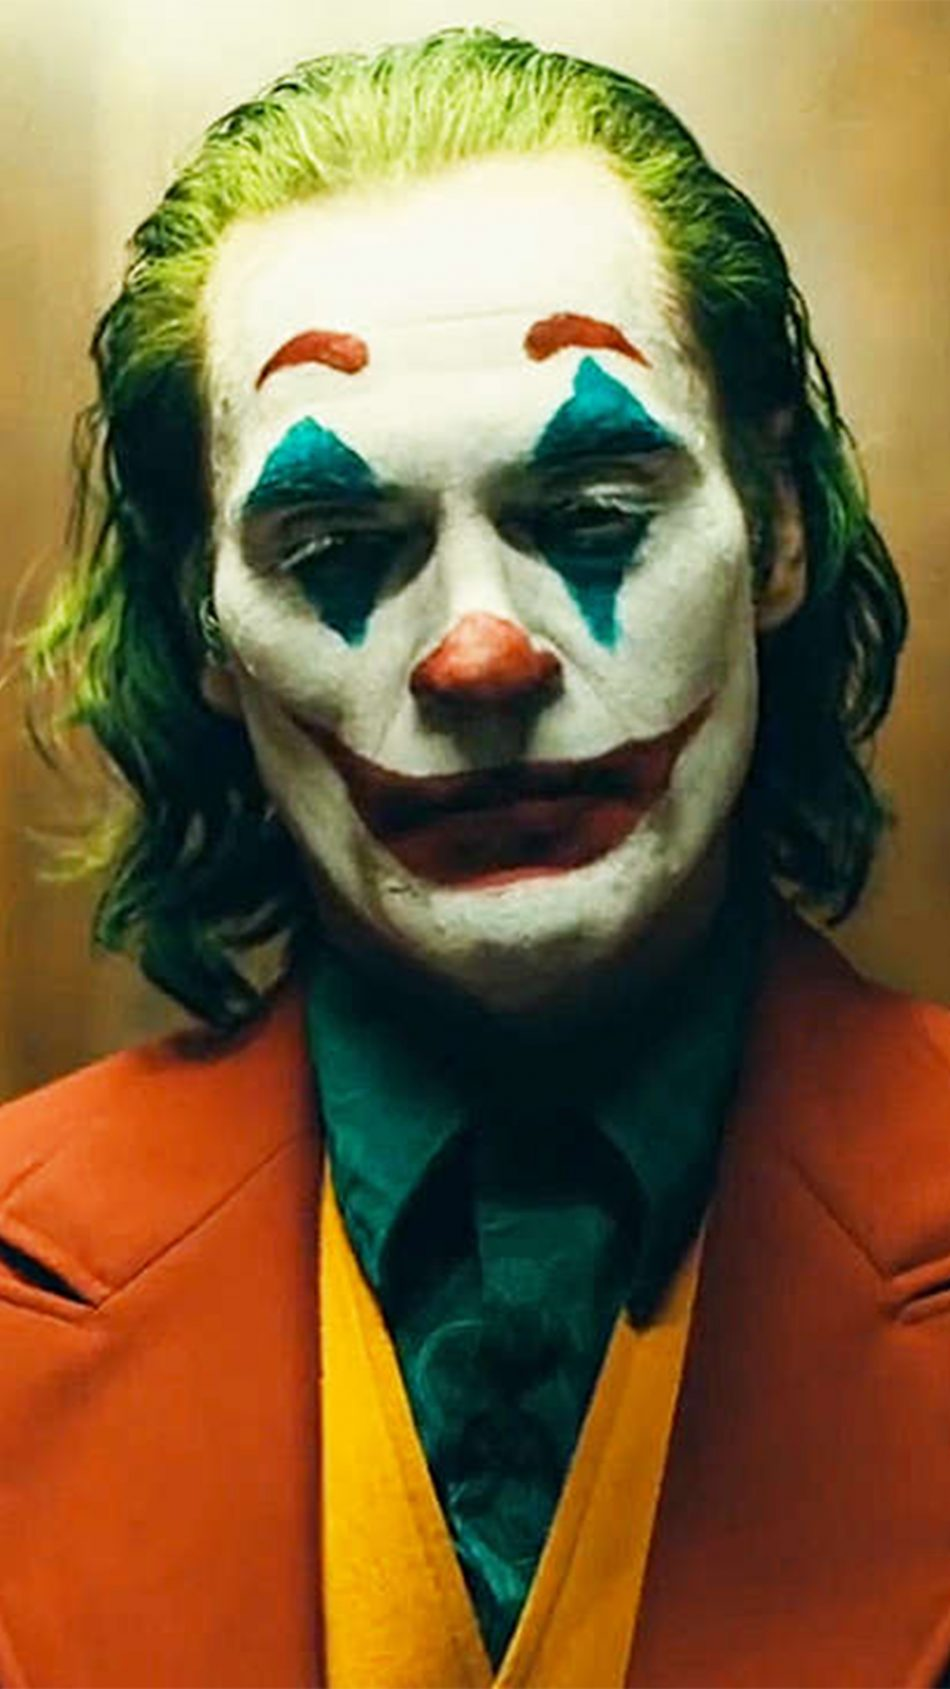 Joaquin Phoenix In Joker 2019 4K Ultra HD Mobile Wallpaper